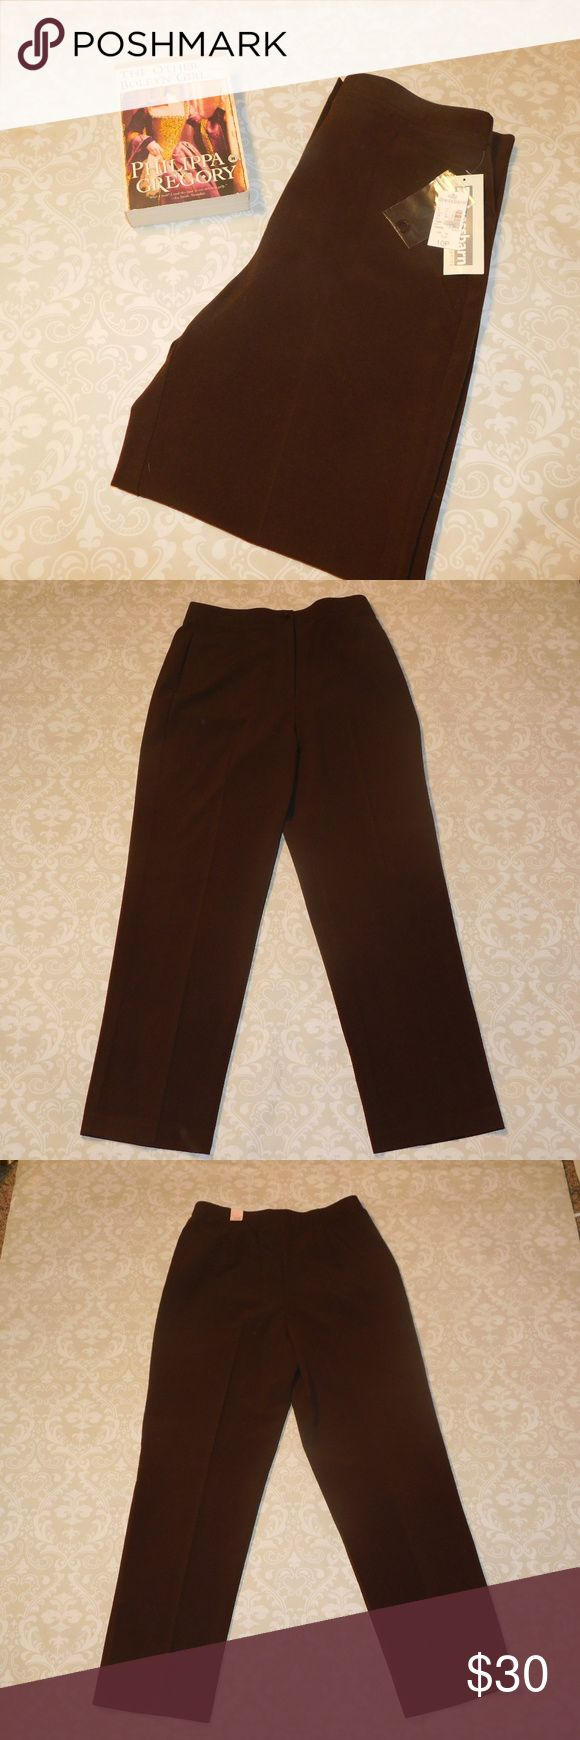 NWT Dress Barn Slacks New Brown Dress Barn petite dress pants. Size 10P. Measurements: Waist: 15 inches Rise: 13 inches Inseam: 29 inches. Dress Barn Pants Trousers